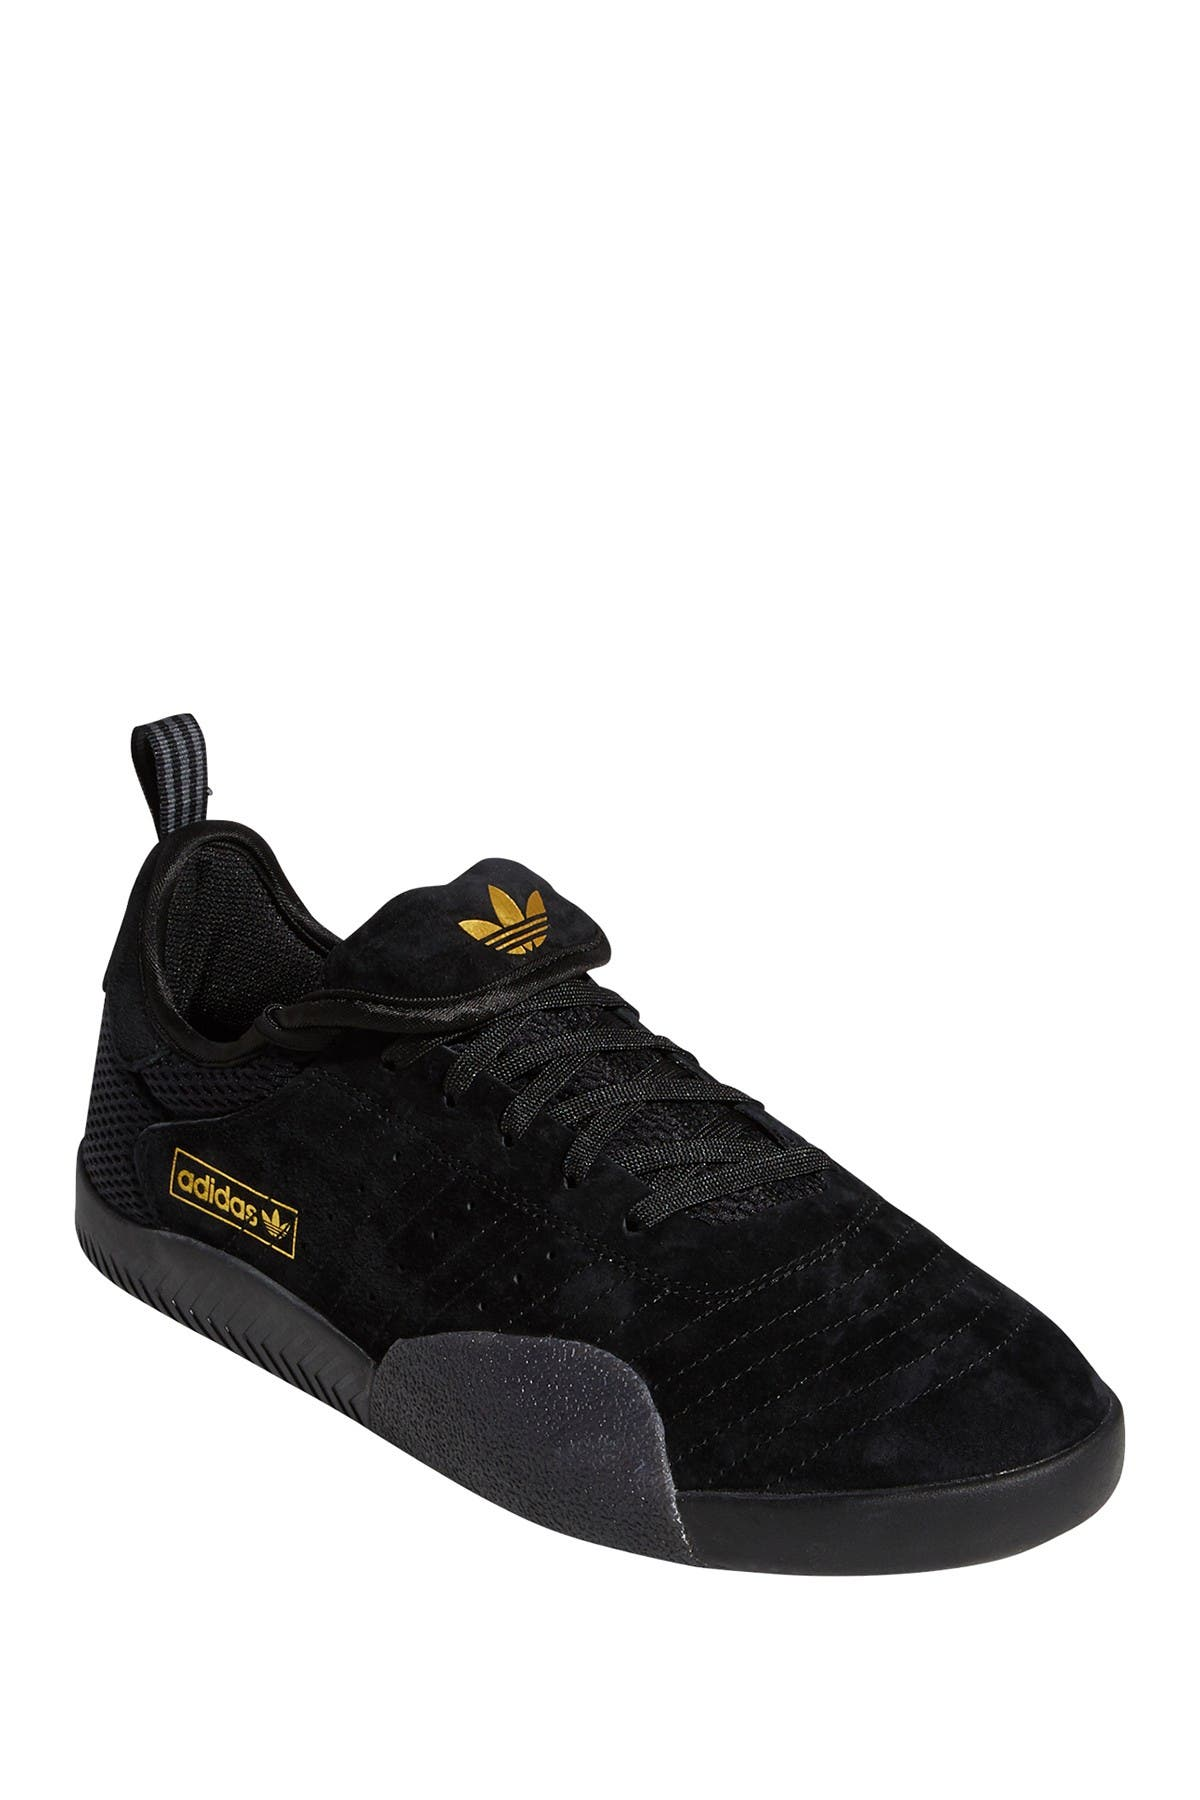 Image of adidas 3ST.003 Sneaker